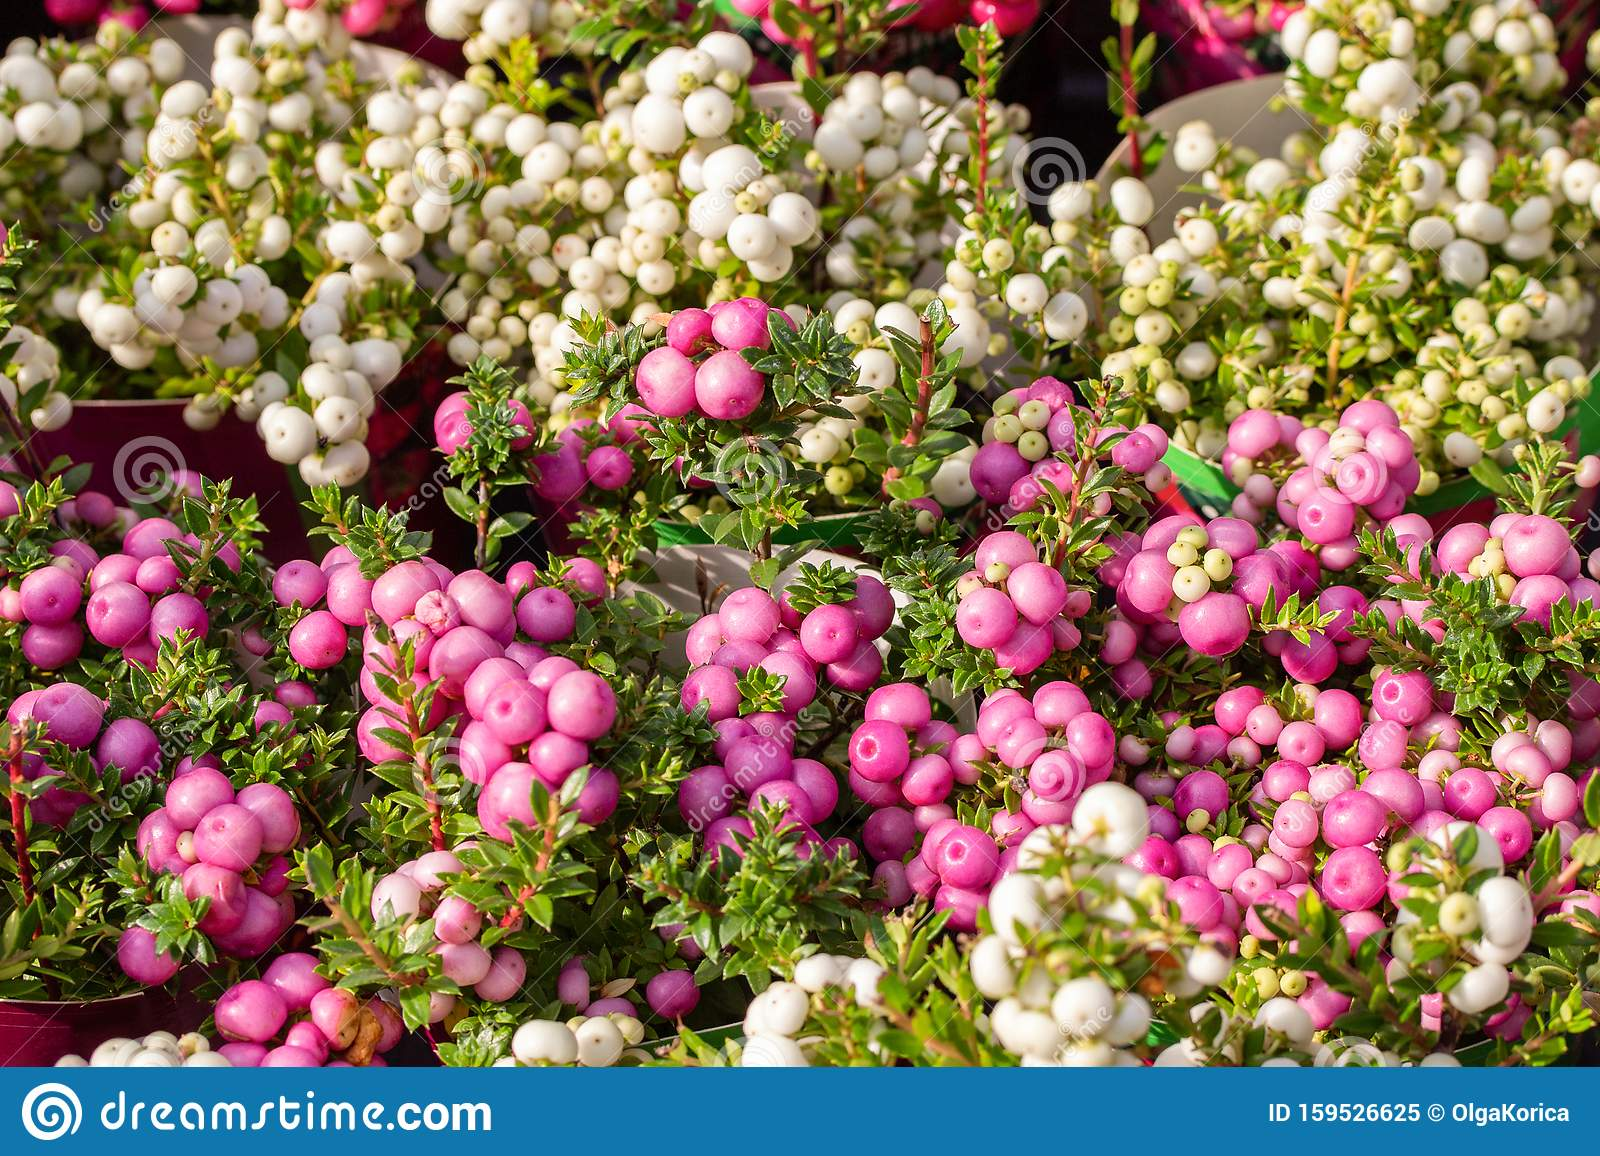 Pernettya Pink.Pernettya Spiky Autumn Fruits Ripe White Pink Gaultheria Mucronata Berries Horizontal Background Stock Image Image Of Heather Nature 159526625